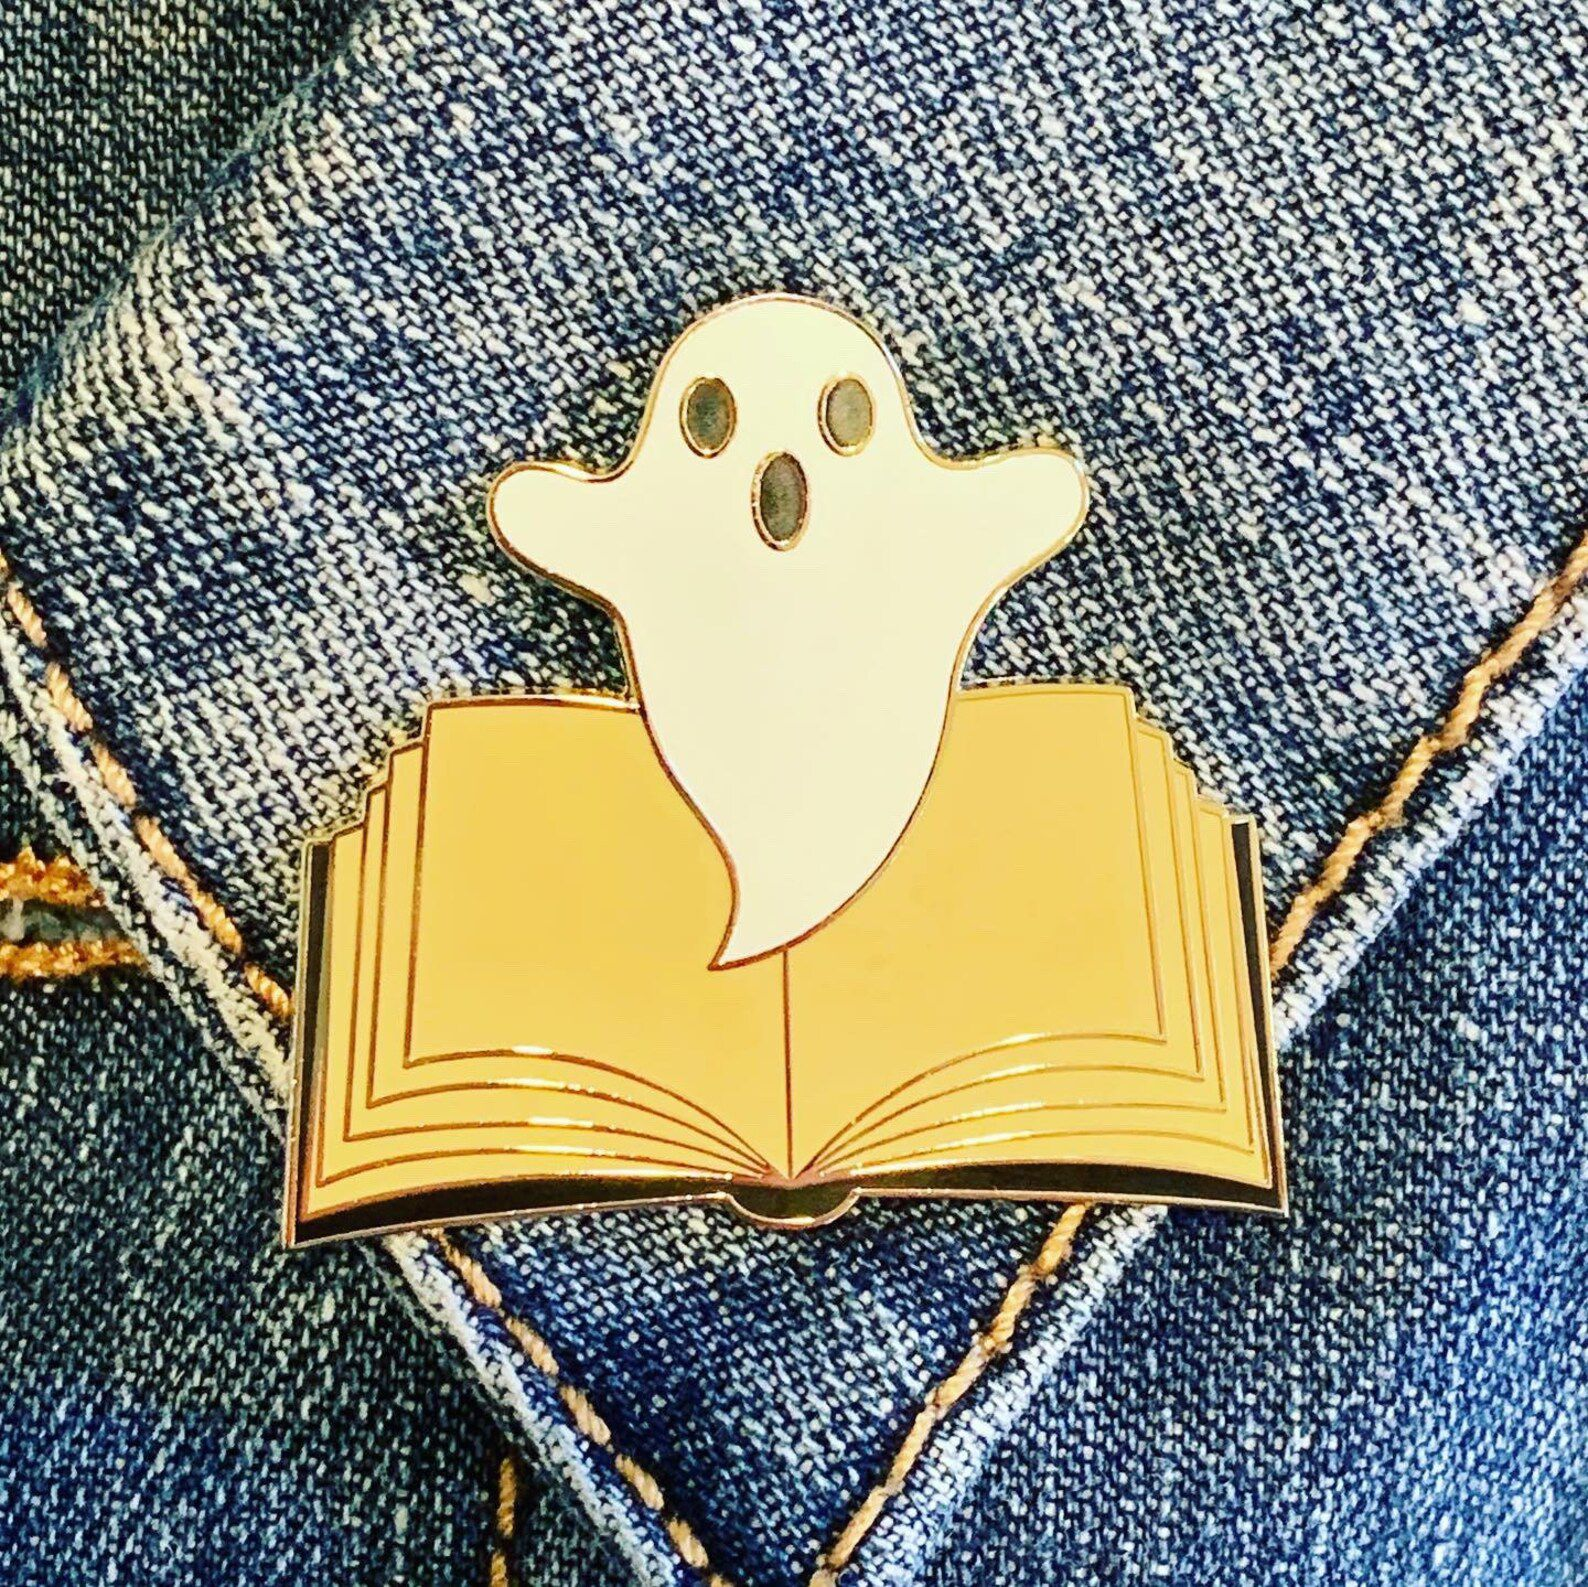 A pin of a small white ghost floating out of an open book.